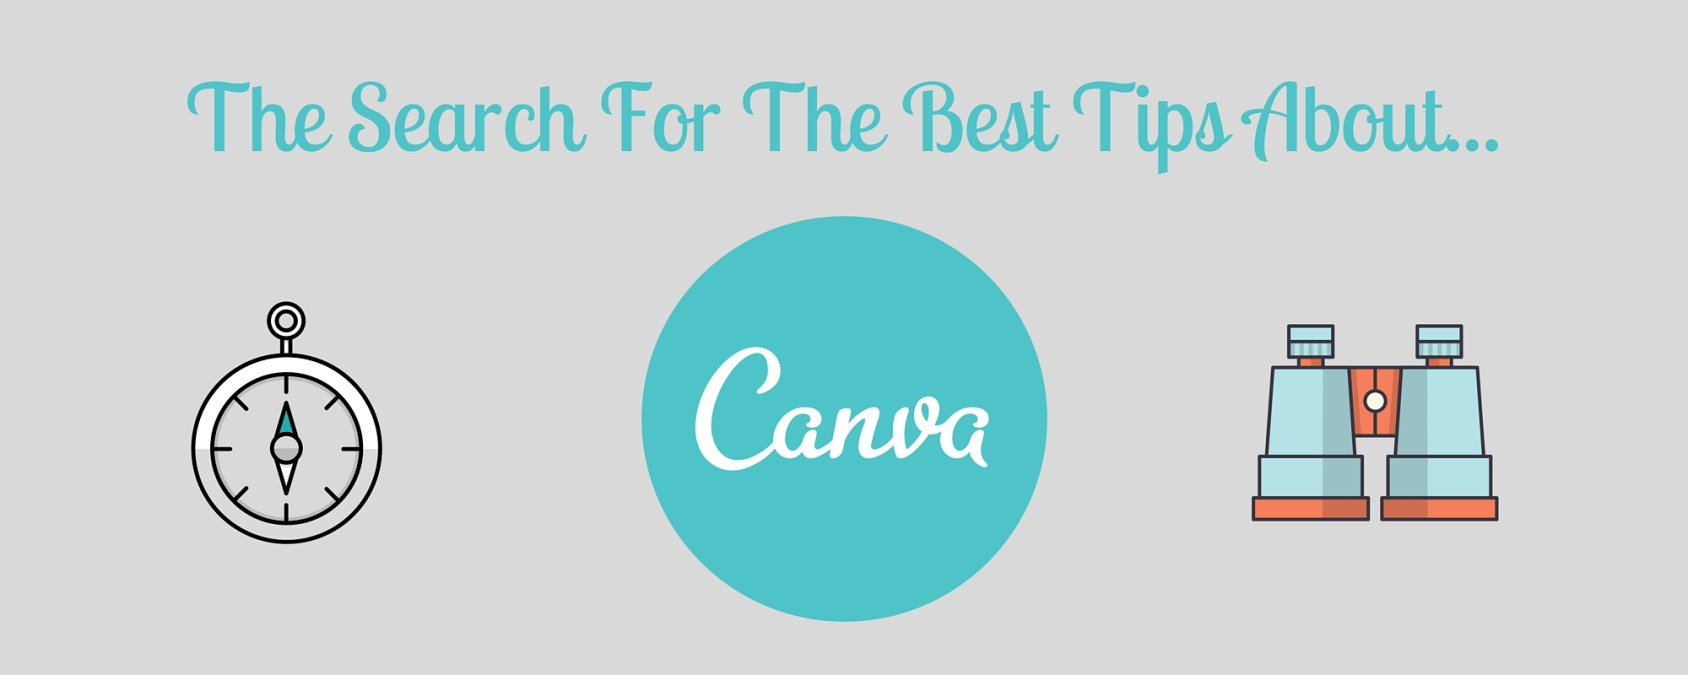 Top Tips for Canva